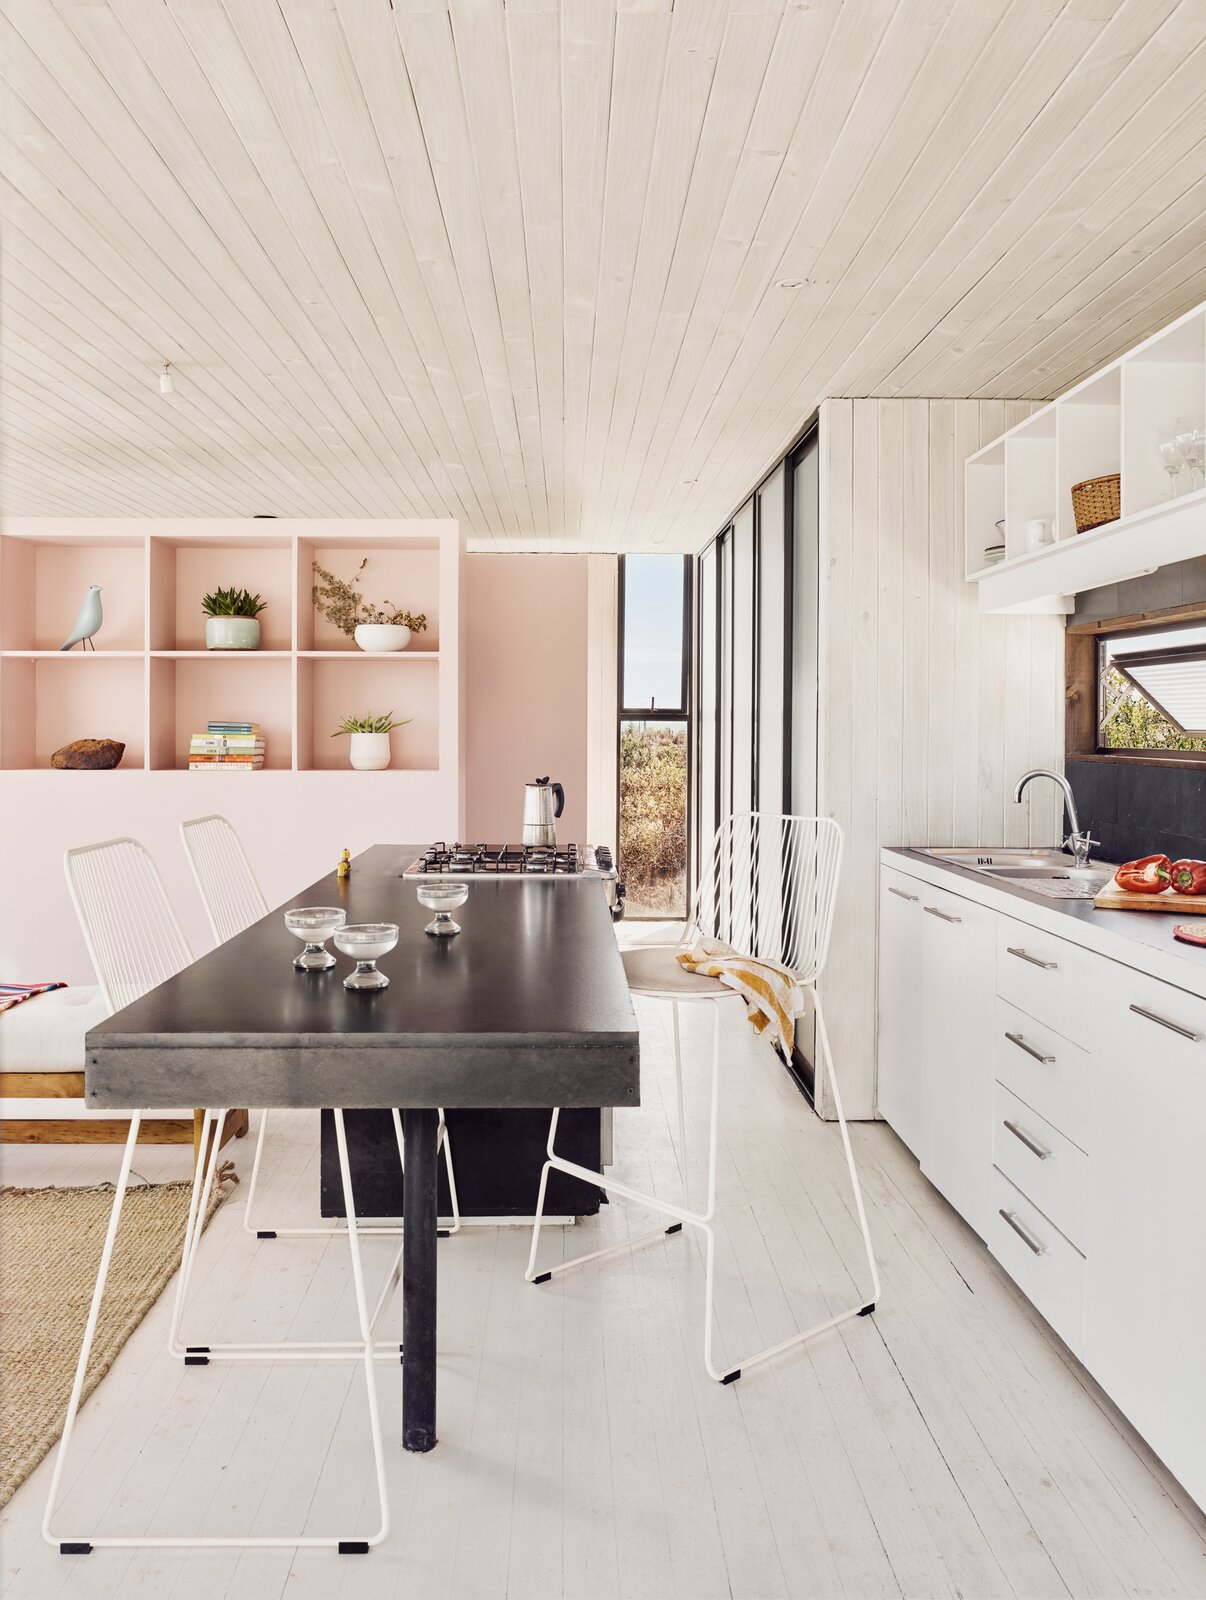 Kitchen, Metal Counter, Recessed Lighting, Drop In Sink, and Light Hardwood Floor  Photo 5 of 10 in A Streamlined Home in Chile Straddles the Line Between Desert and Ocean